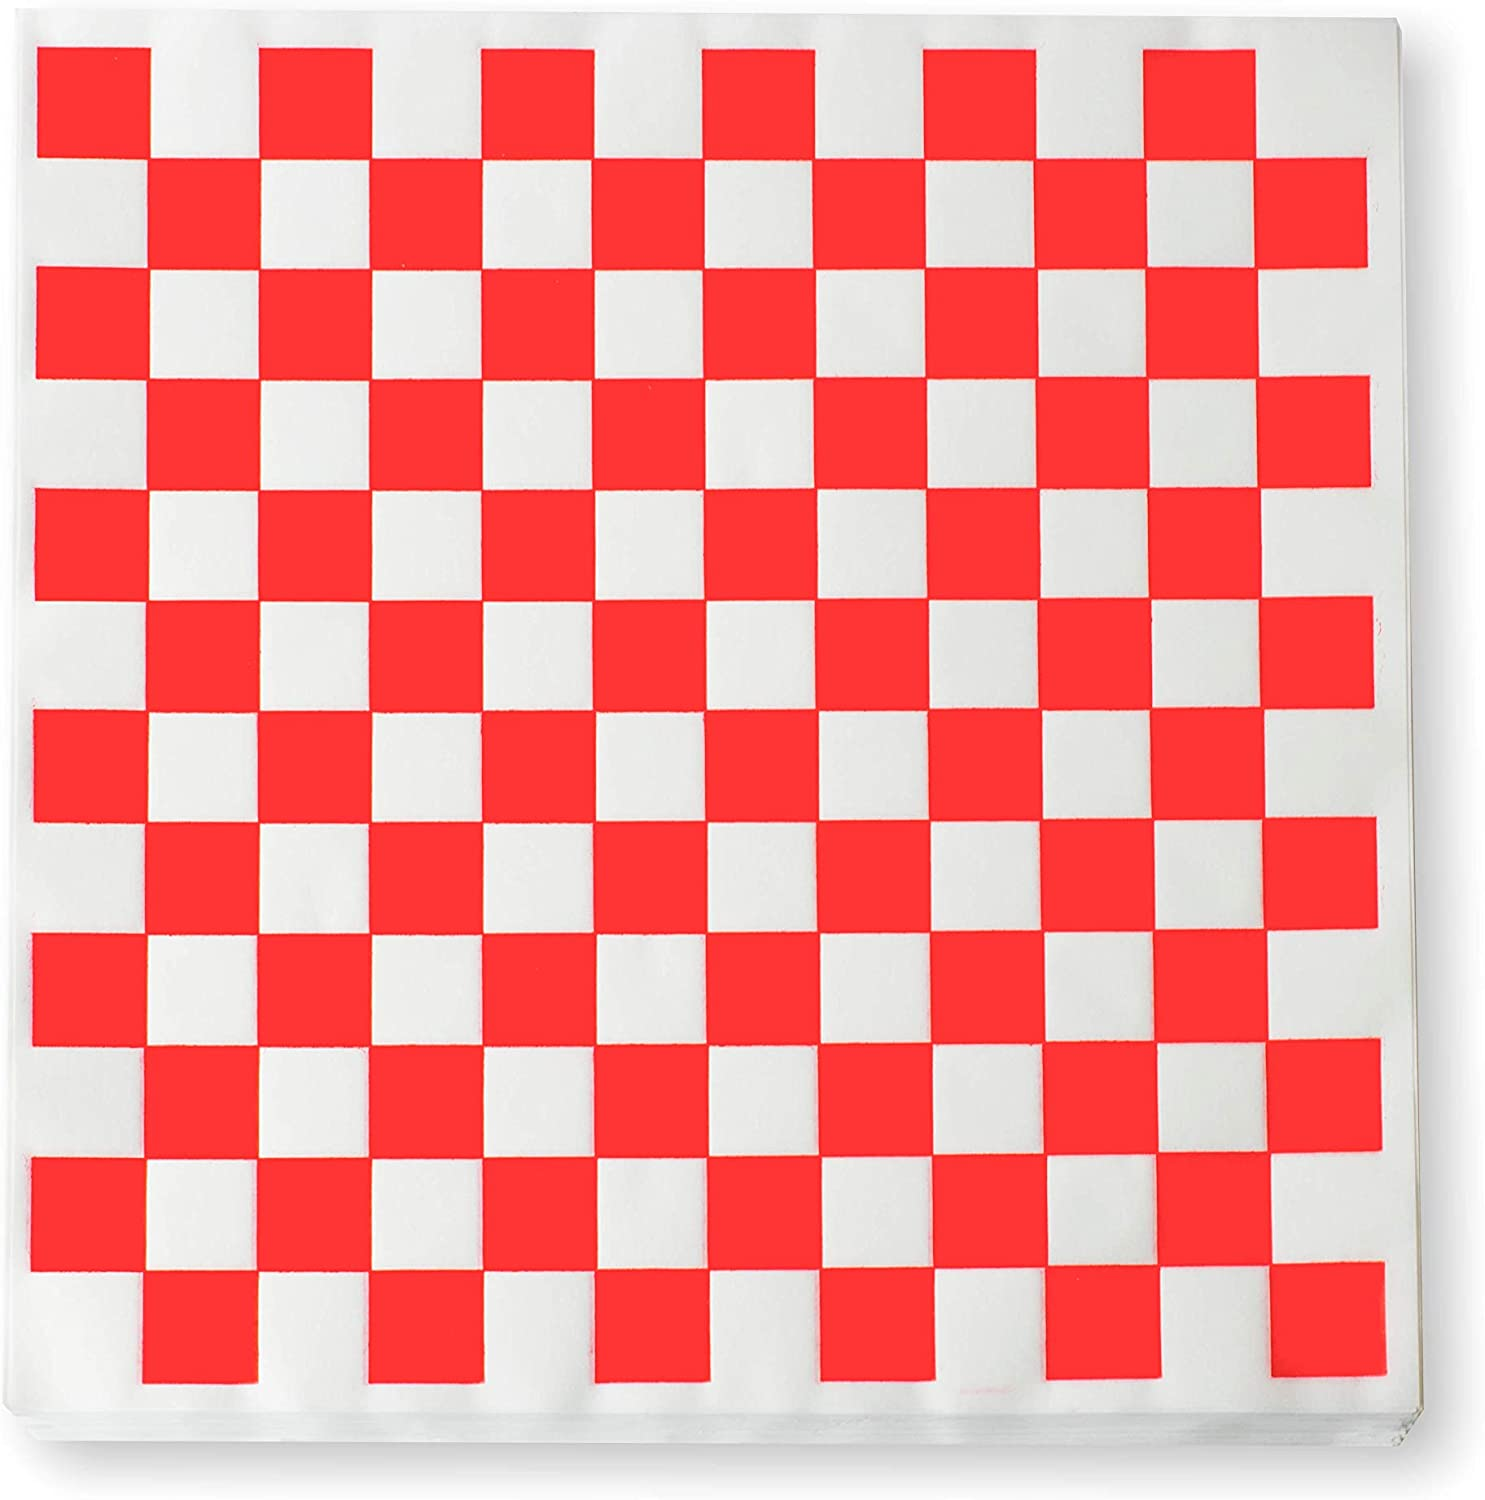 Max 41% OFF 1000 Sheets of Red and White Checkered Daily bargain sale Bask Grease - Resistant